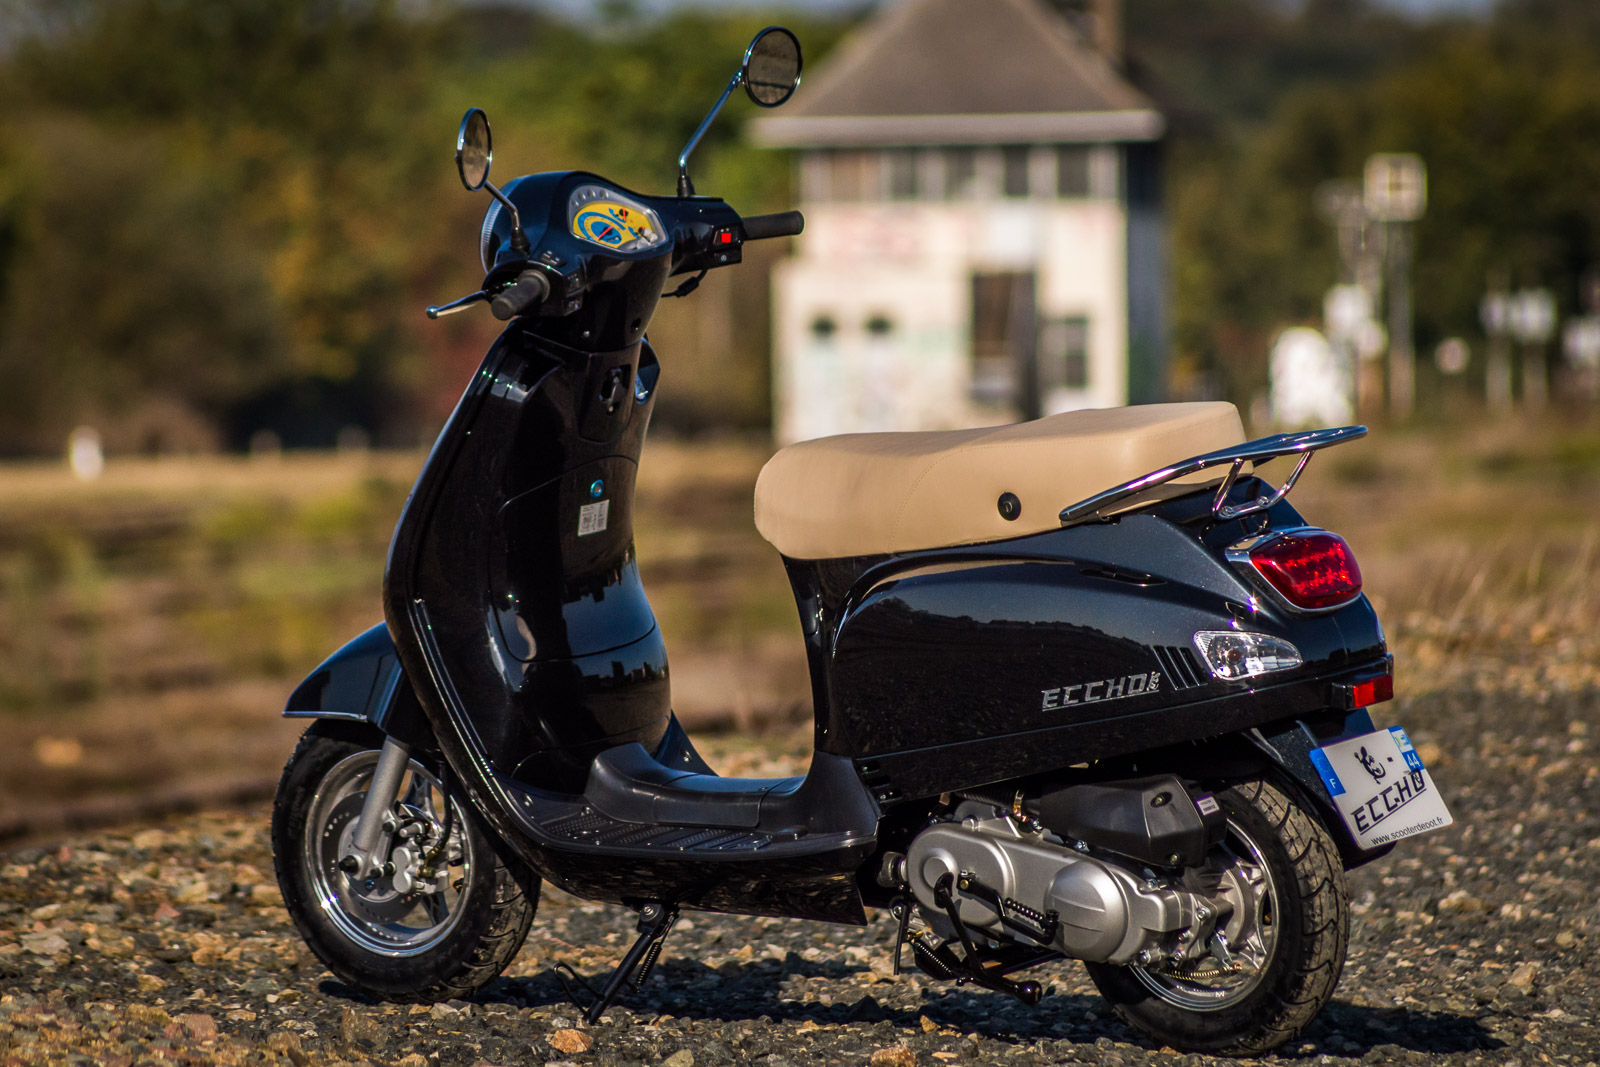 SCOOTER-50-ECCHO-VPX-05